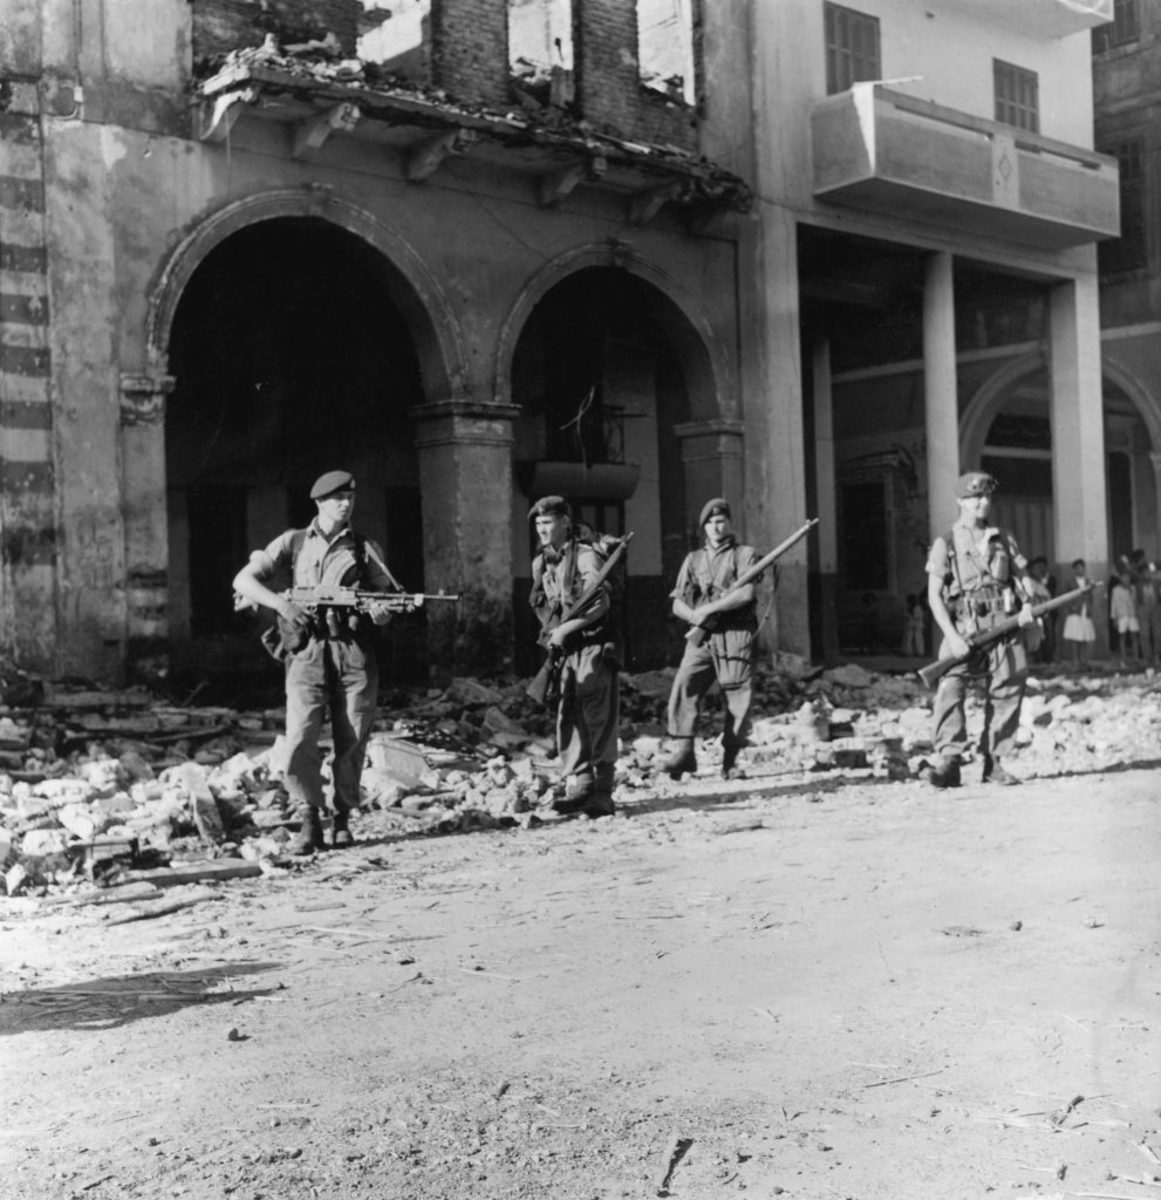 British troops on patrol in Egypt during the Suez Crisis, 13th November 1956. (Photo by Walter Bellamy/Daily Express/Hulton Archive/Getty Images)